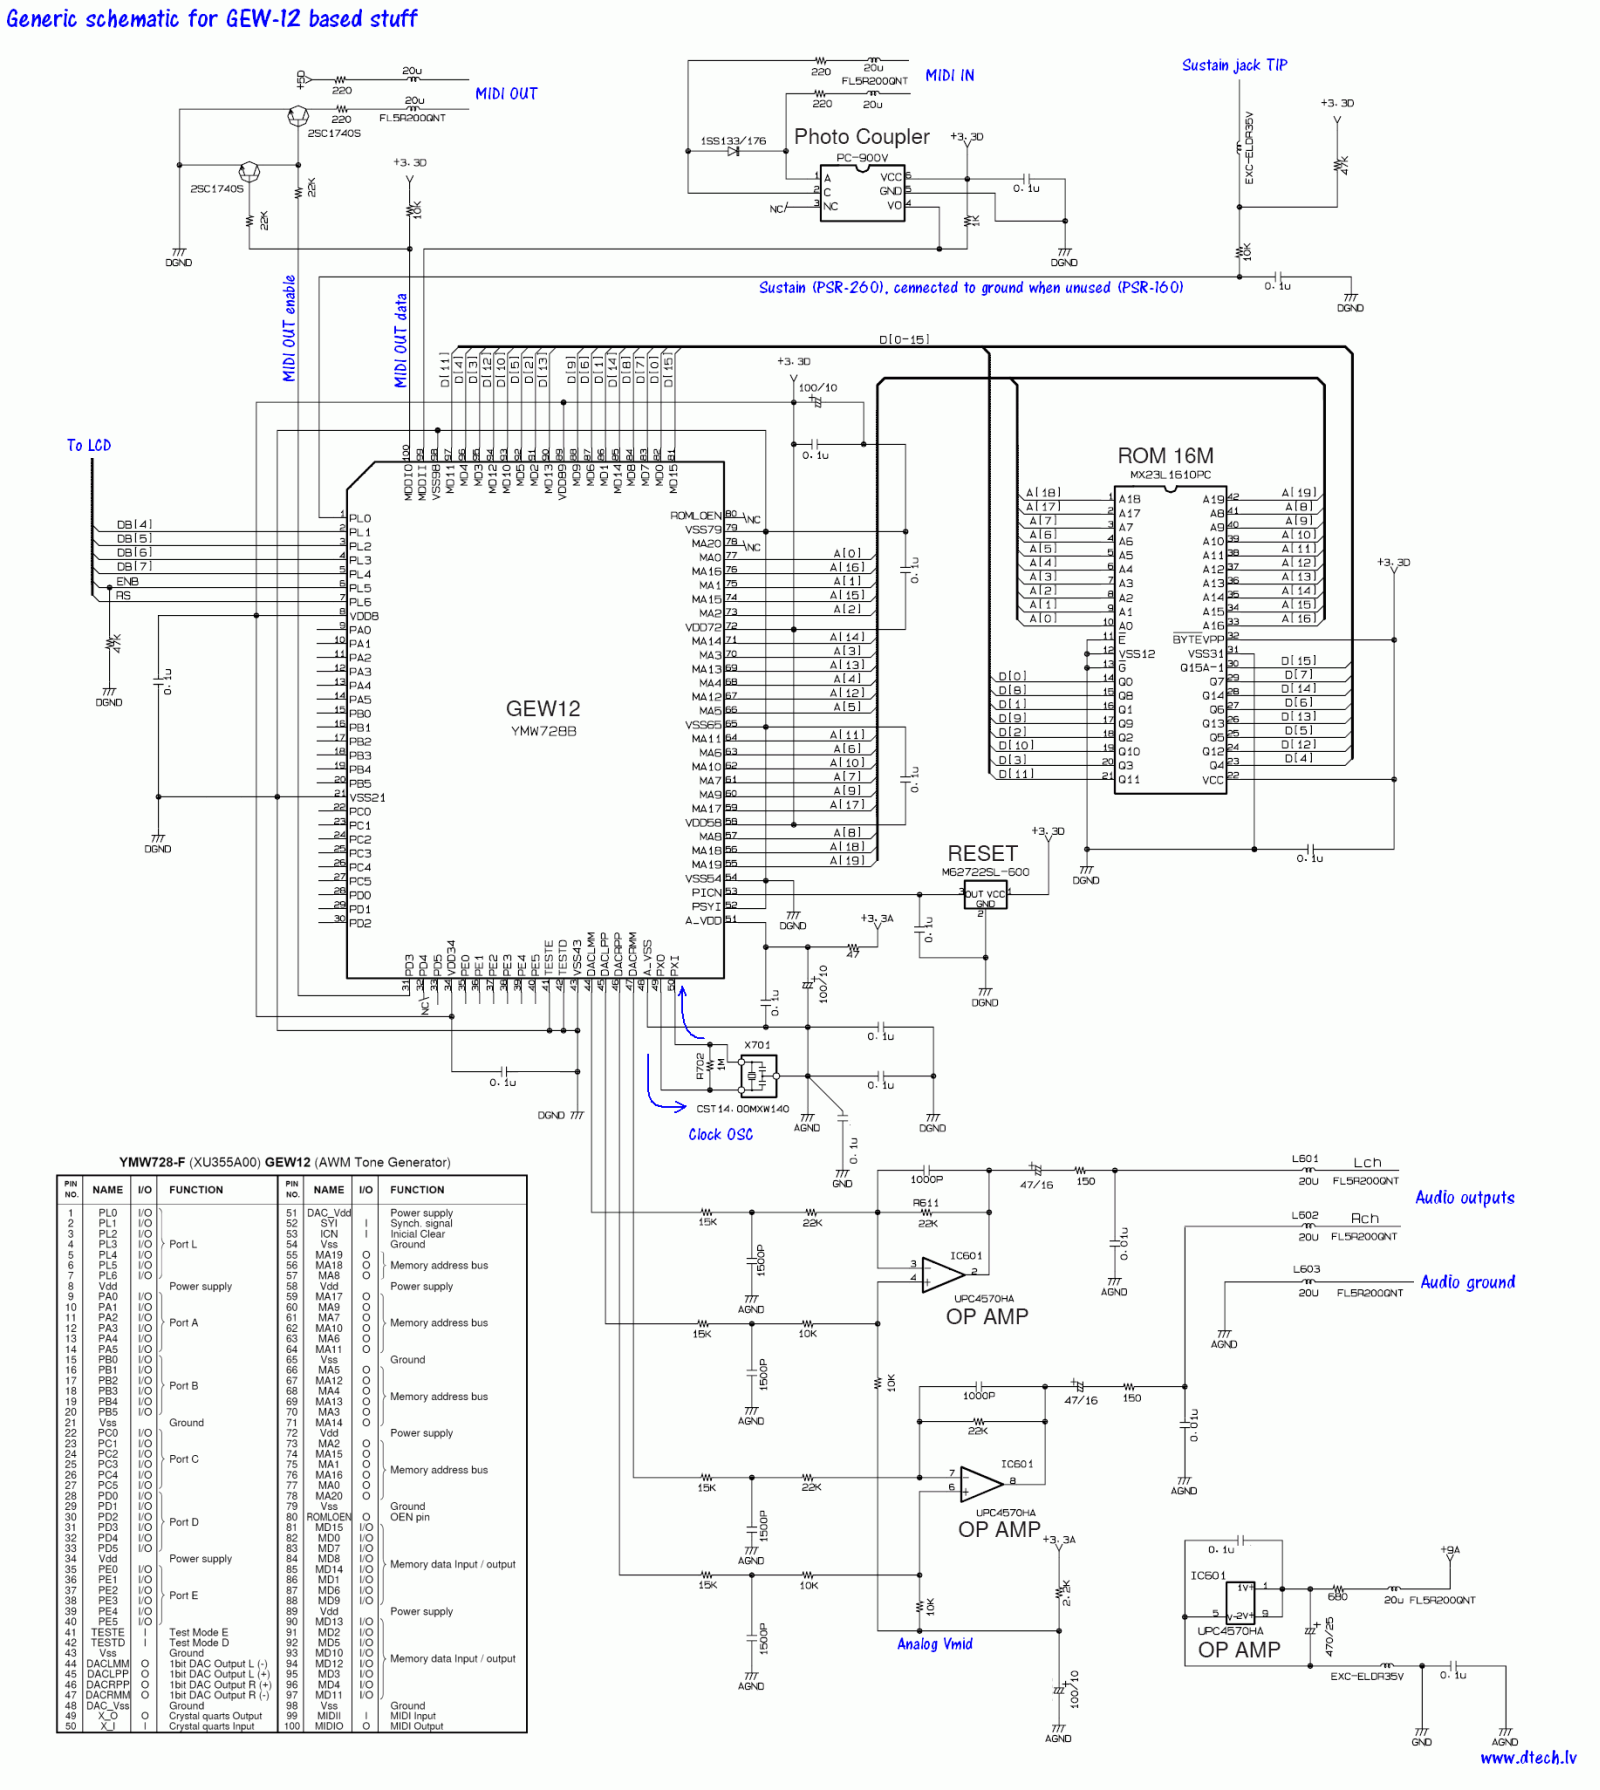 ymw728f_GEW12_generic_schematic_PSR160_PSR170_PSR270 edward d tech website music yamaha schematic diagram at n-0.co